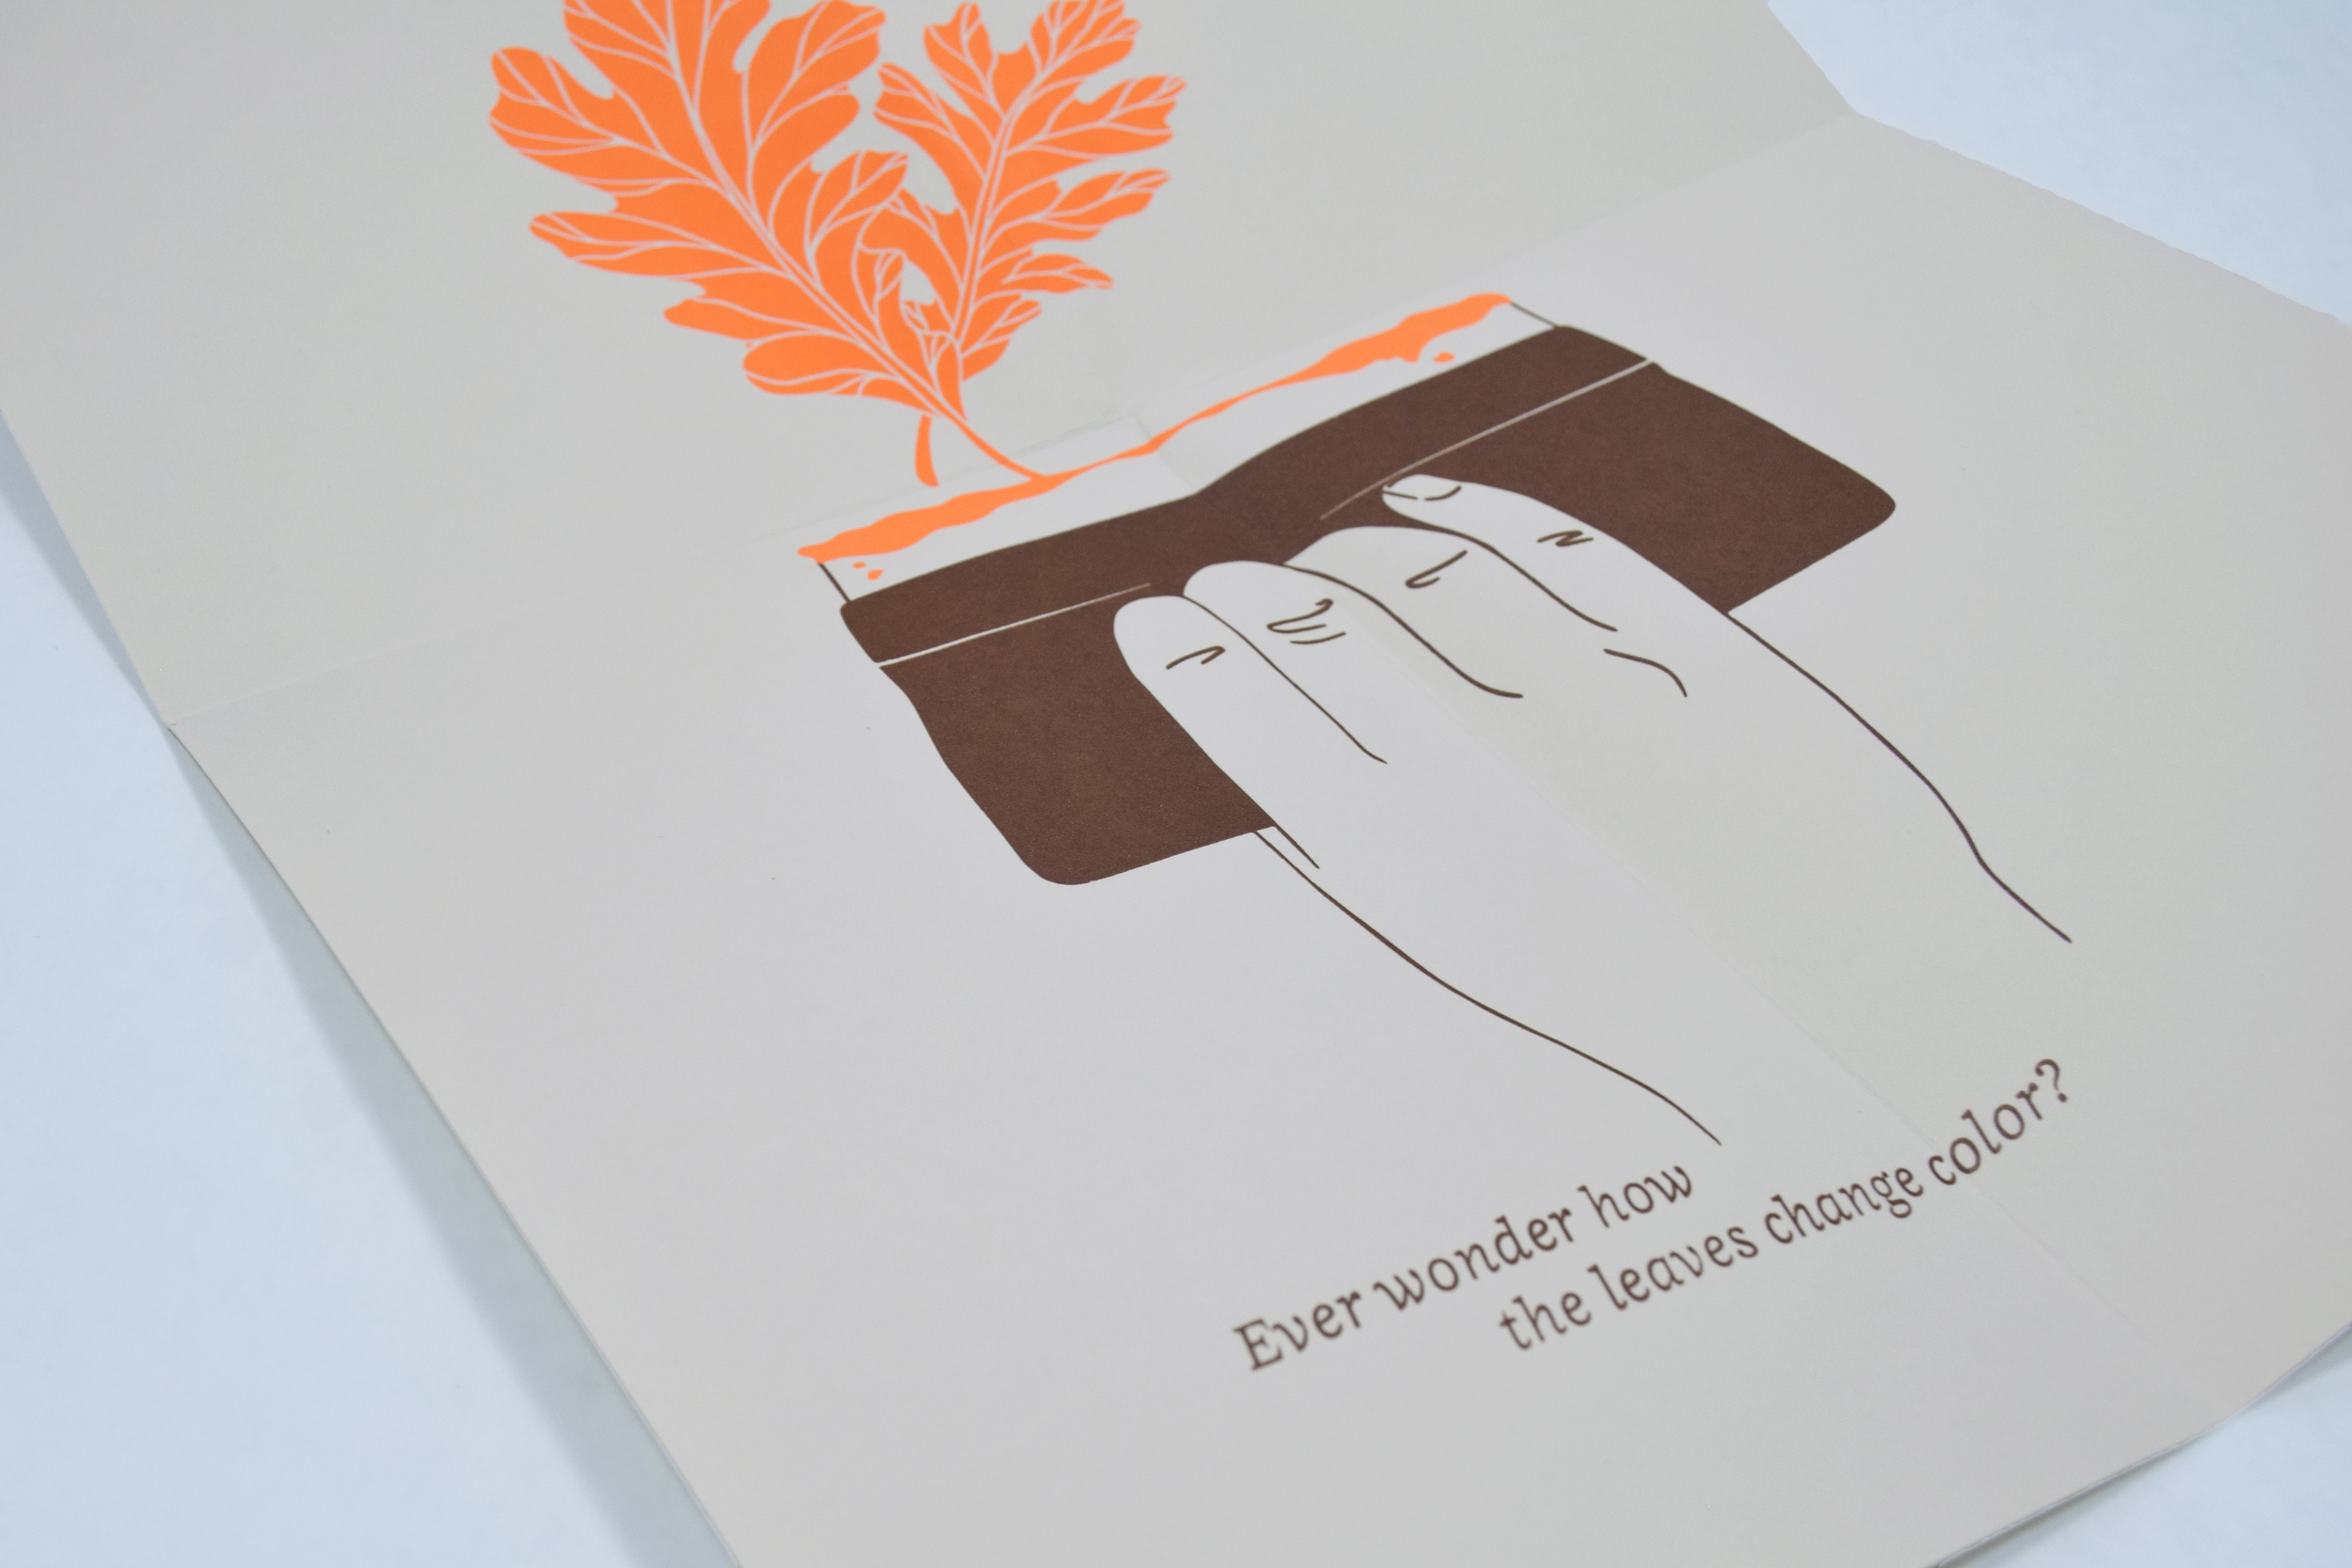 Screen printing humor on the complimentary, autumn themed screen printed poster insert.